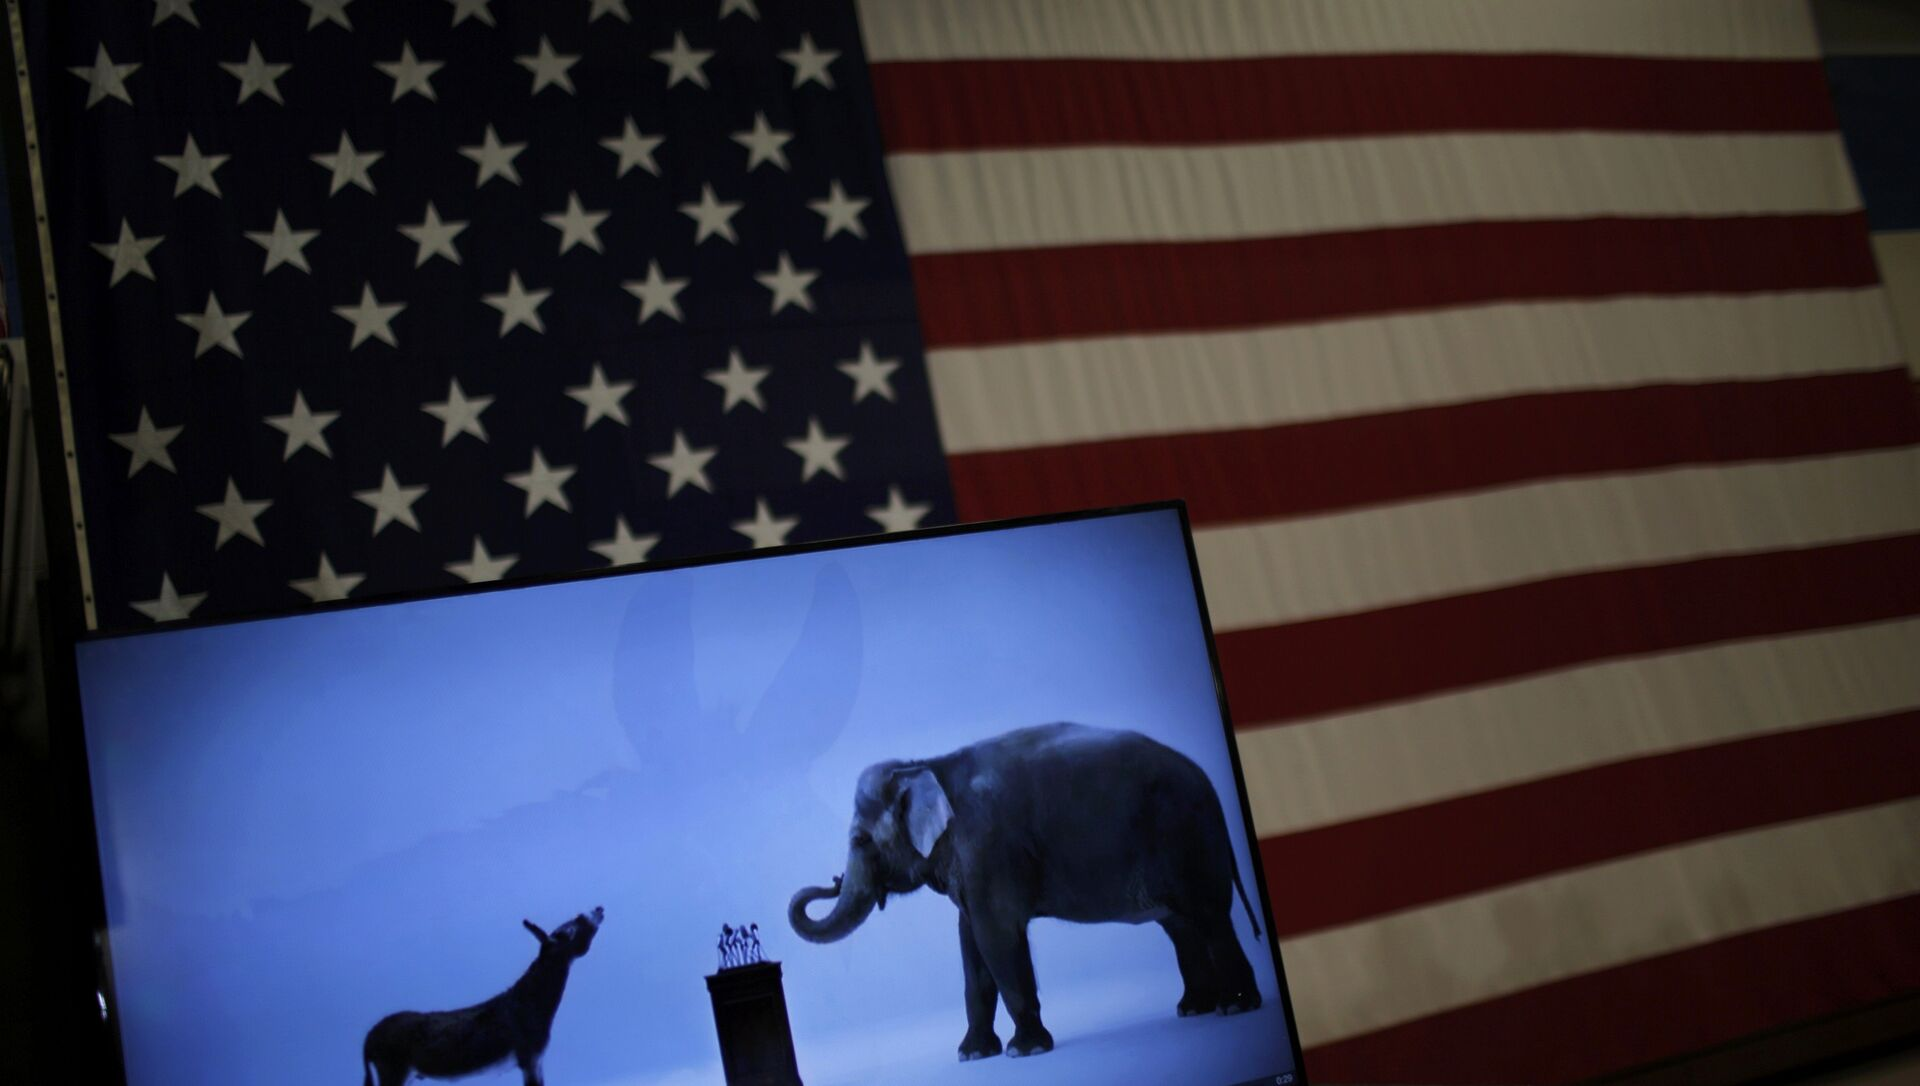 The mascots of the Democratic and Republican parties, a donkey for the Democrats and an elephant for the GOP, are seen on a video screen at Democratic U.S. presidential candidate Hillary Clinton's campaign rally in Cleveland, Ohio March 8, 2016 - Sputnik International, 1920, 15.03.2021